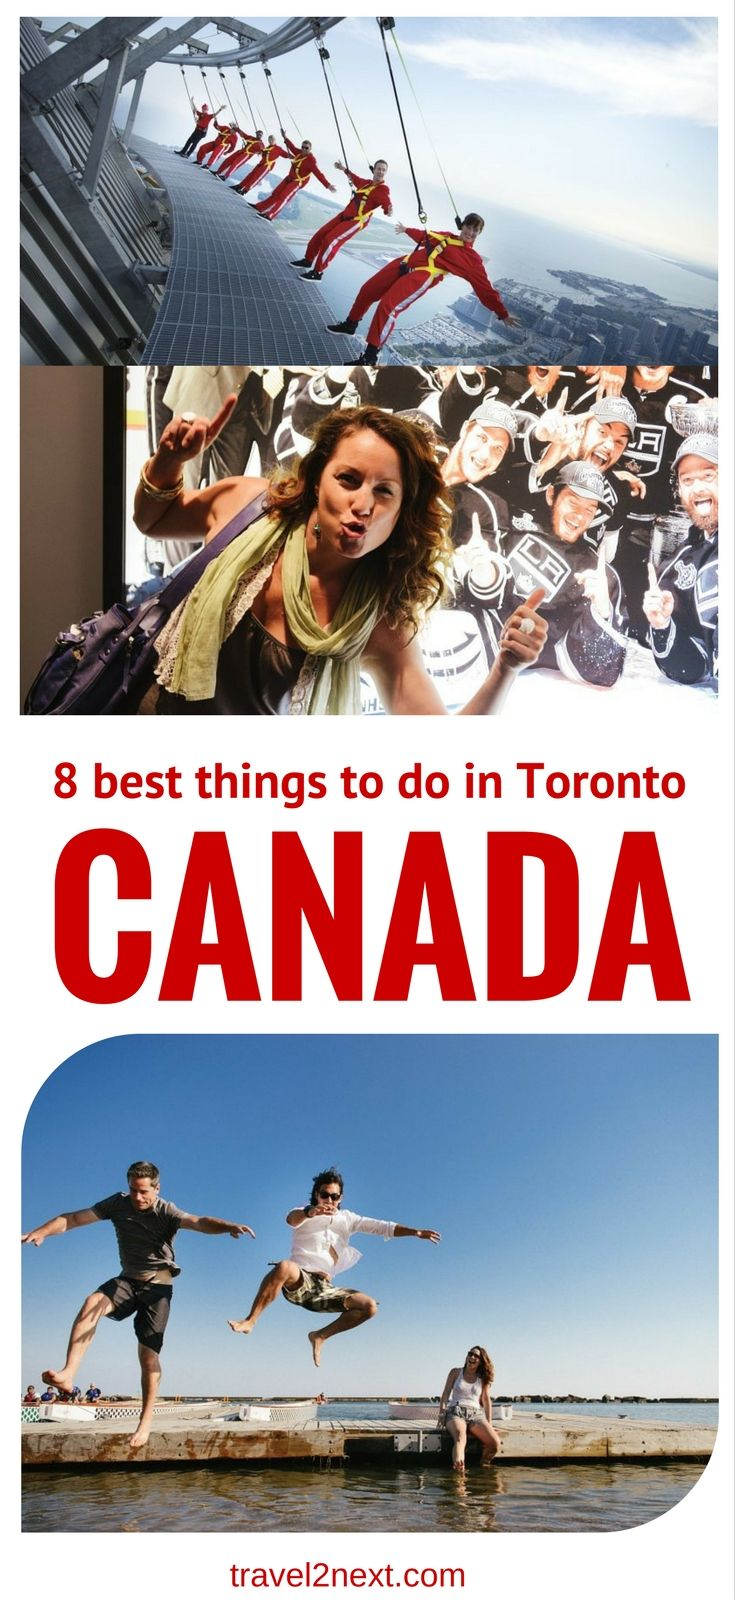 8 best things to do in Toronto. Canada's largest city hones in on fun, interesting and out-of-this world attractions. And why shouldn't it?